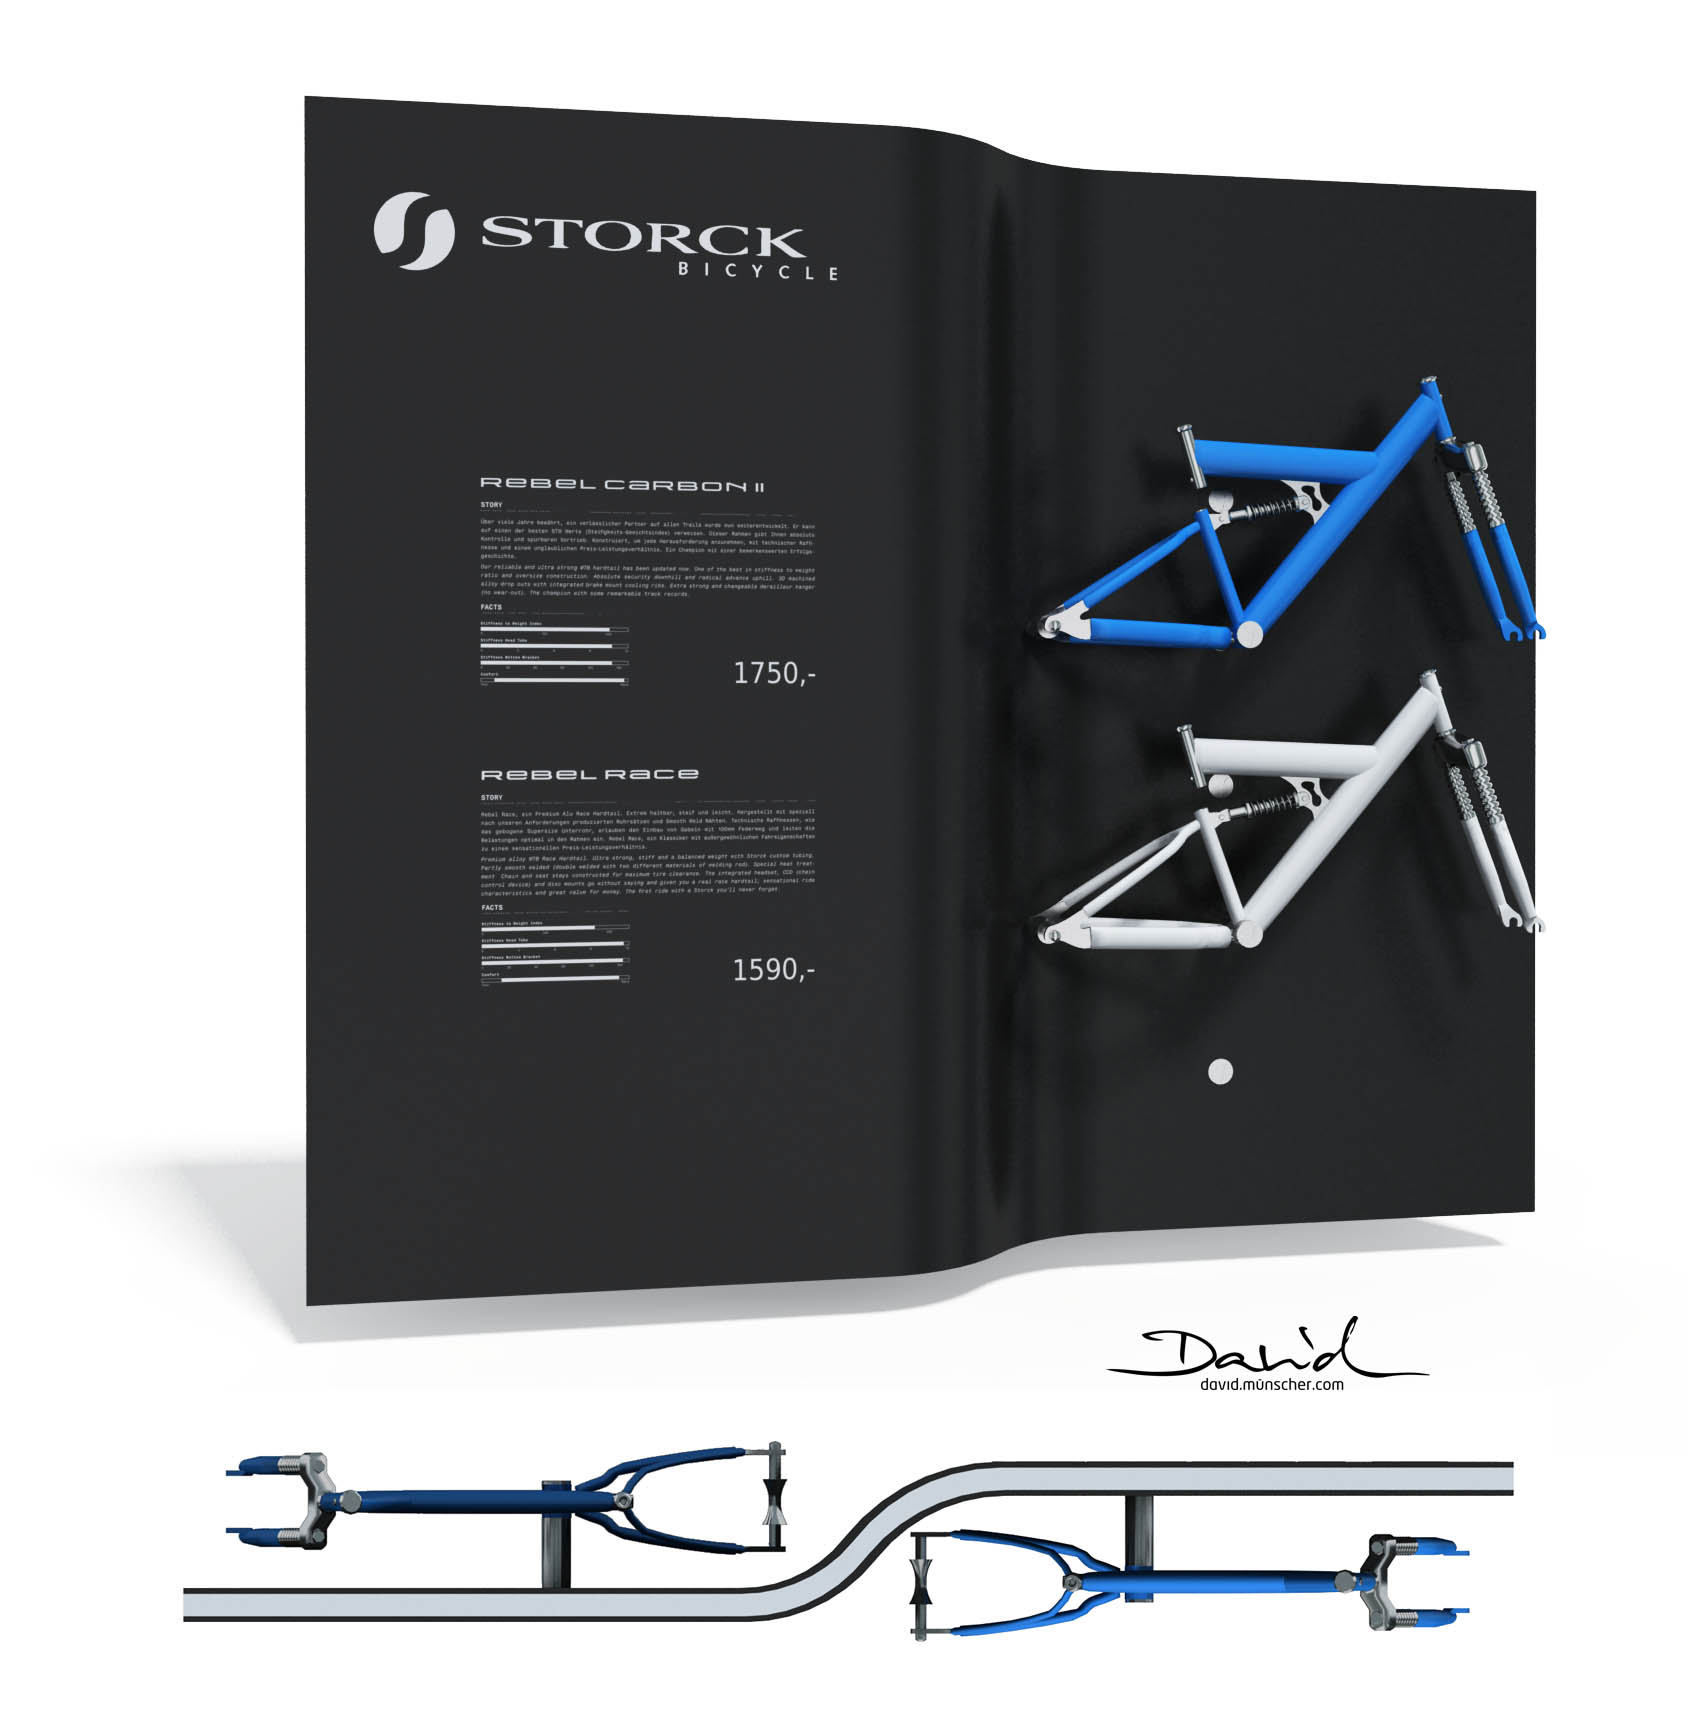 Storck | POS Display